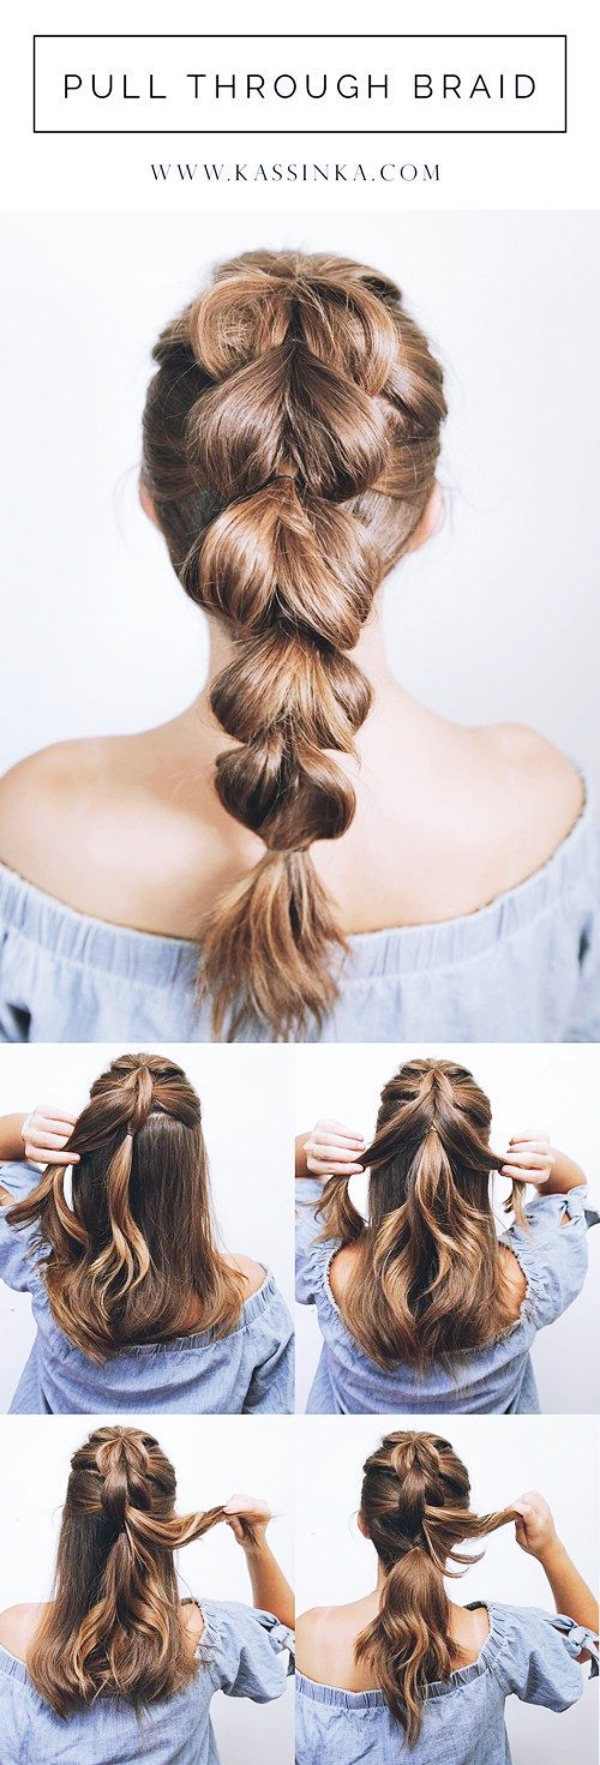 Self-Do-Hairstyles-For-Working-MOMs